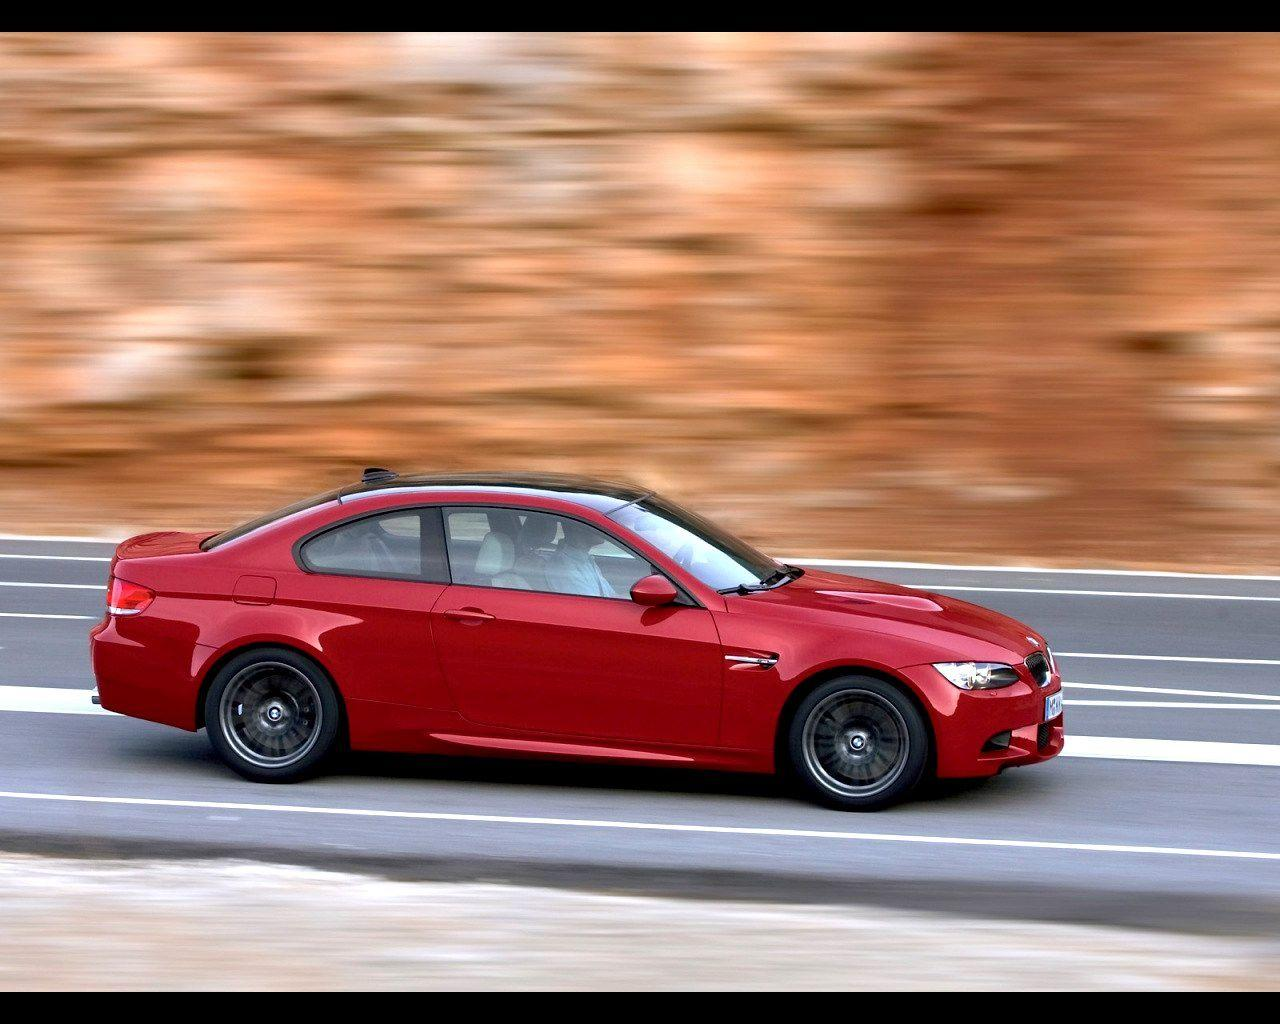 2008 BMW M3 Wallpaper 16 - 1280x1024